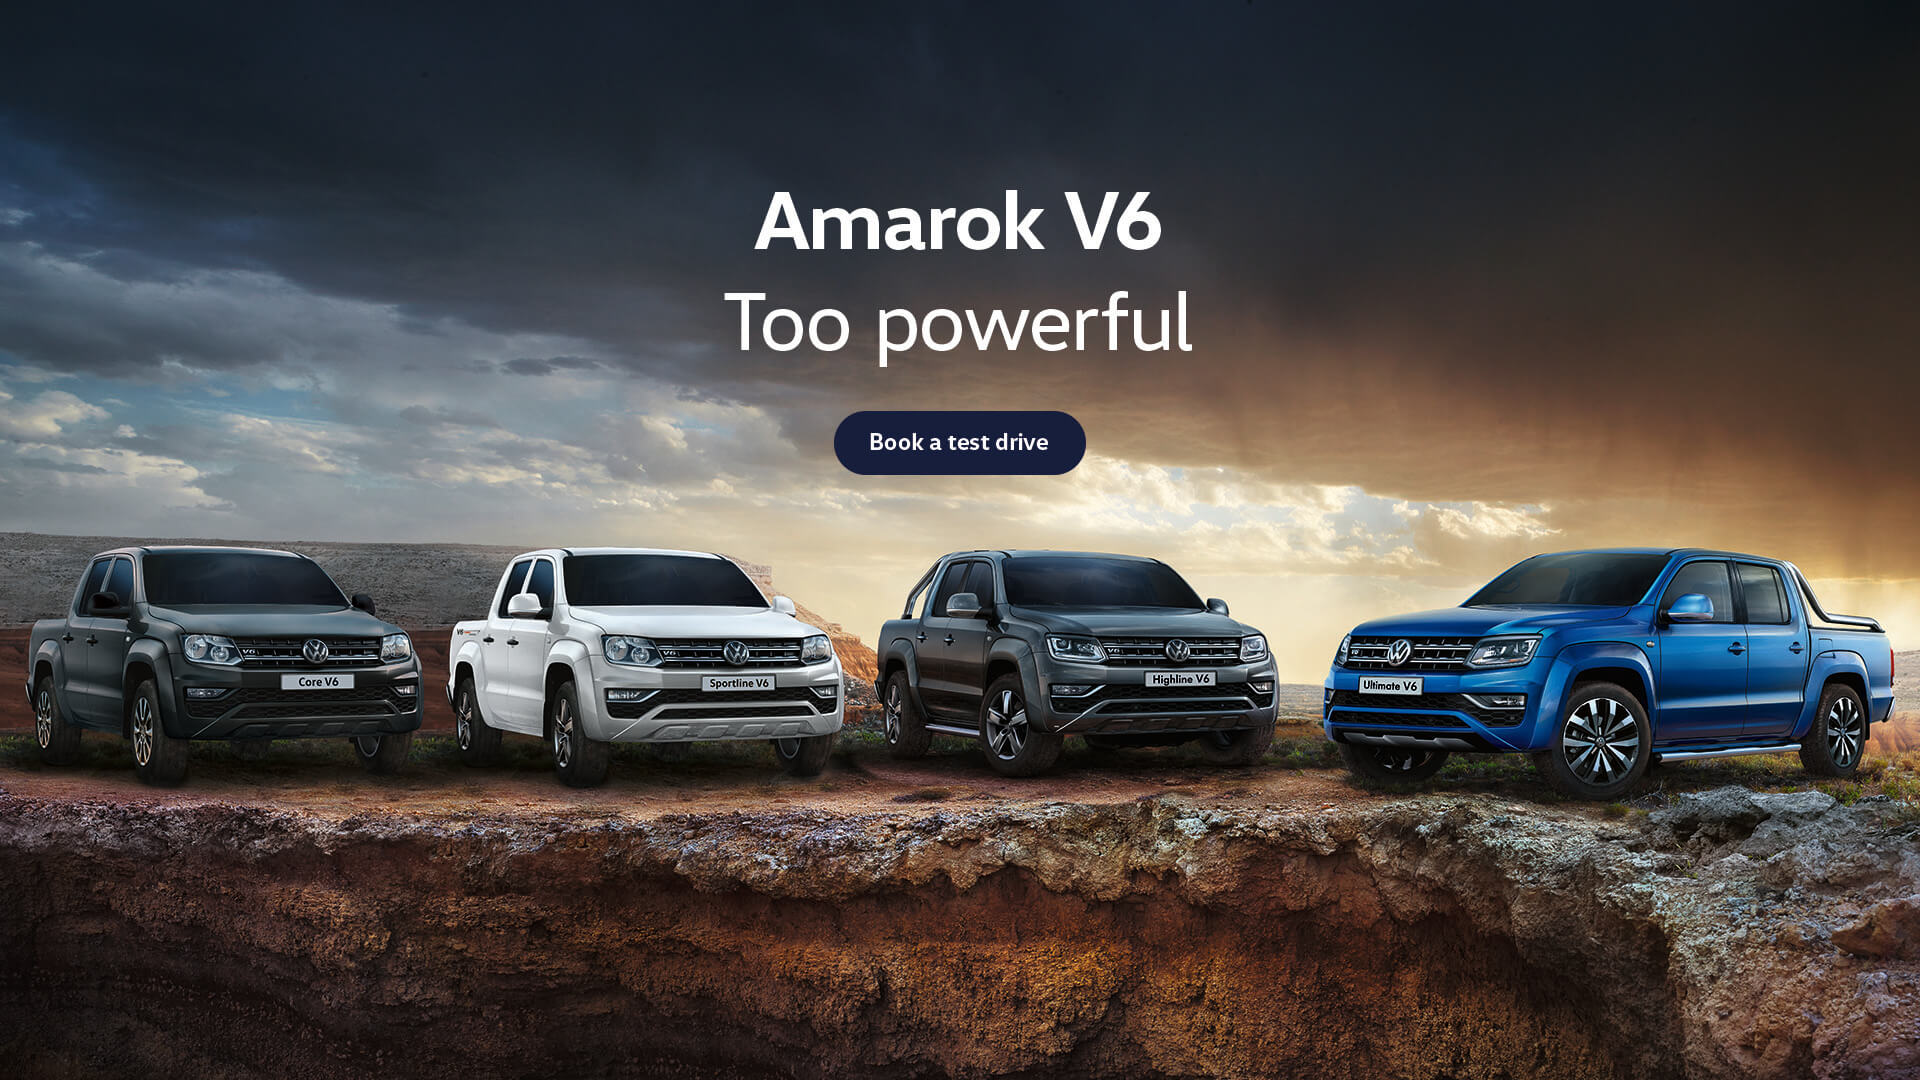 Amarok V6. Too powerful. Test drive today at Cricks Volkswagen Sunshine Coast